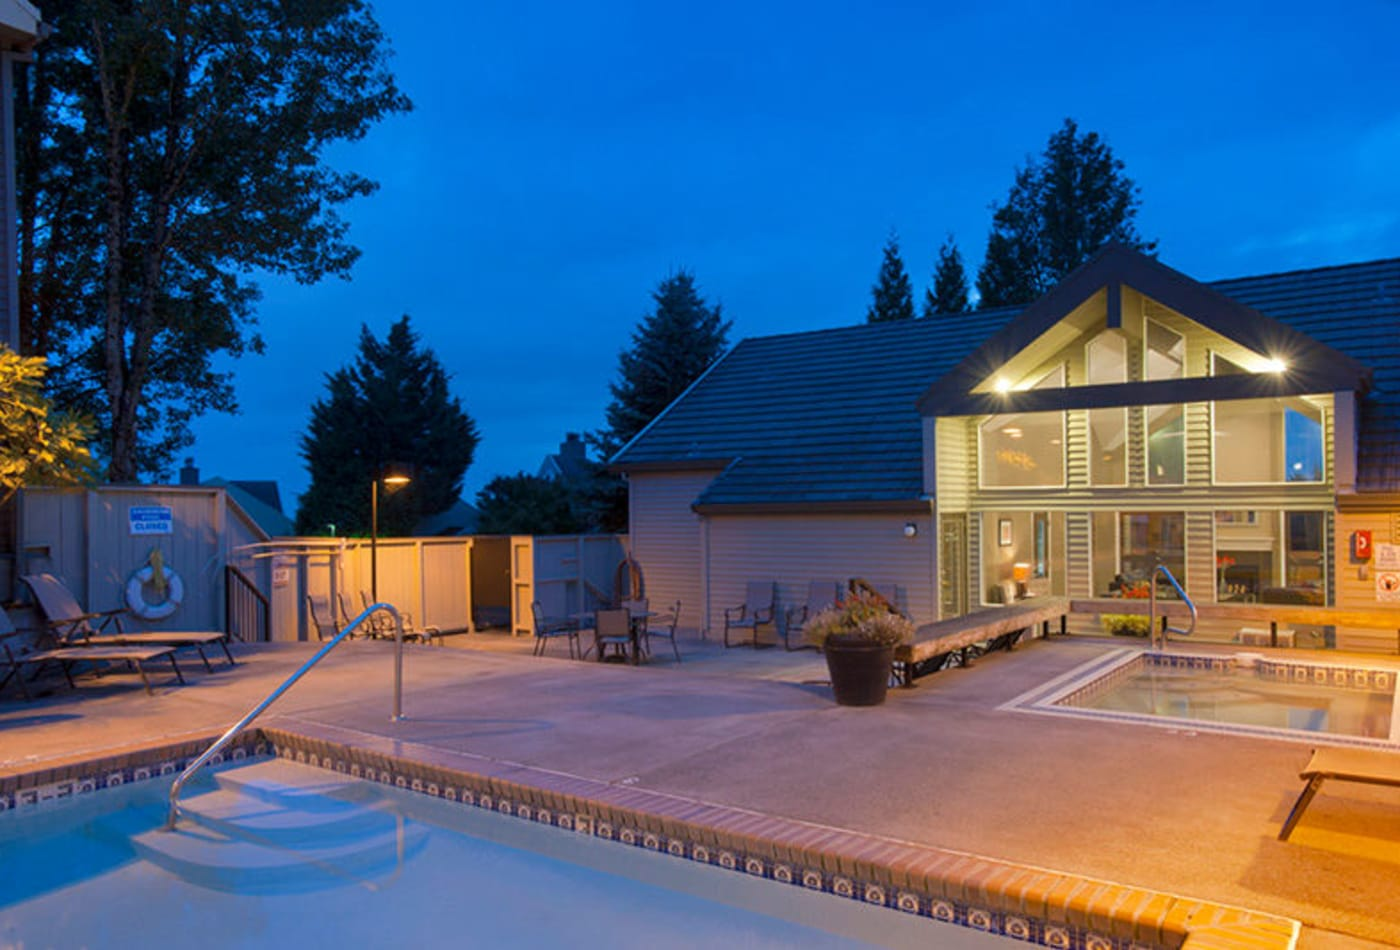 Exterior view of the clubhouse and swimming pool in the evening at MiLO at Mountain Park